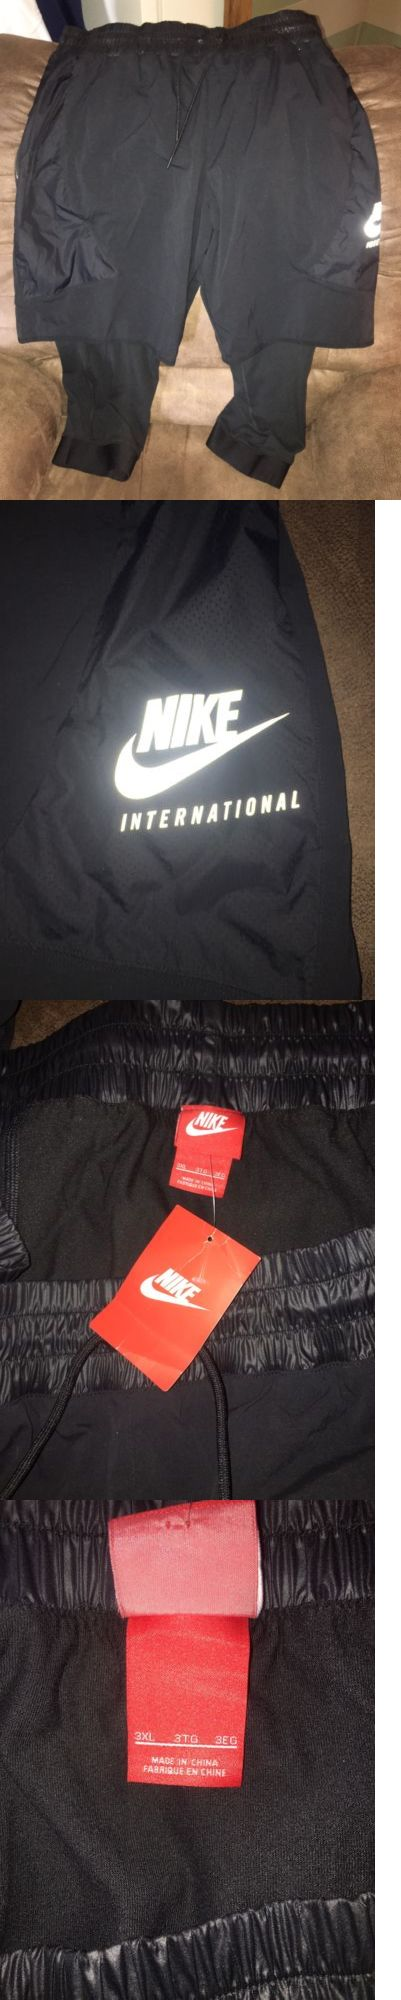 Men Athletics: Nwt Nike International Men S 2-1 Shorts Tights Reflective Flash Black Size 3Xl -> BUY IT NOW ONLY: $59.99 on eBay!